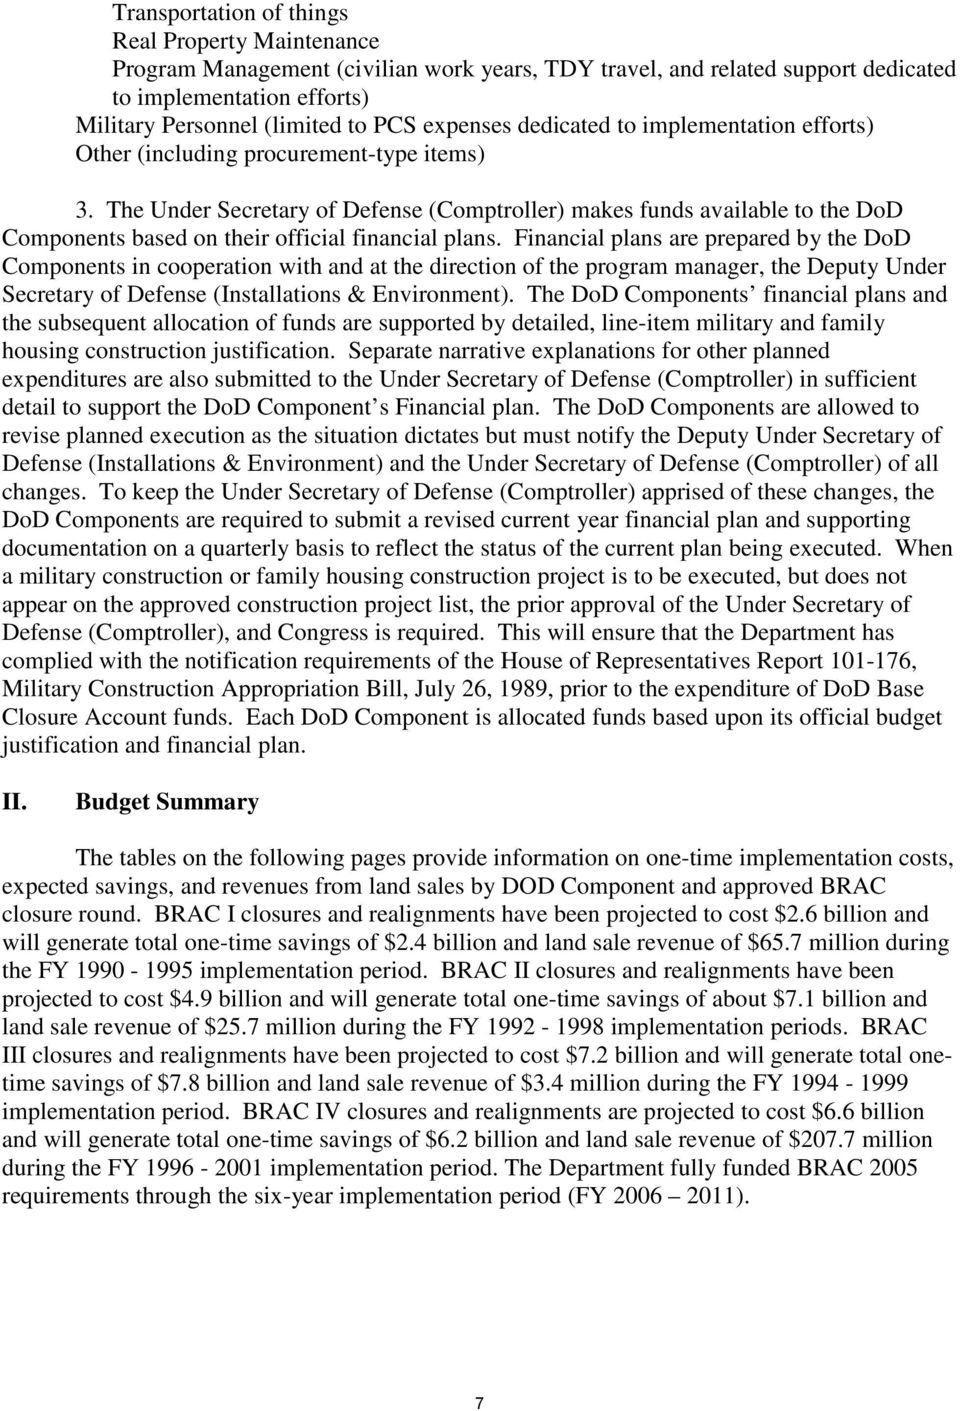 The Under Secretary of Defense (Comptroller) makes funds available to the DoD Components based on their official financial plans.